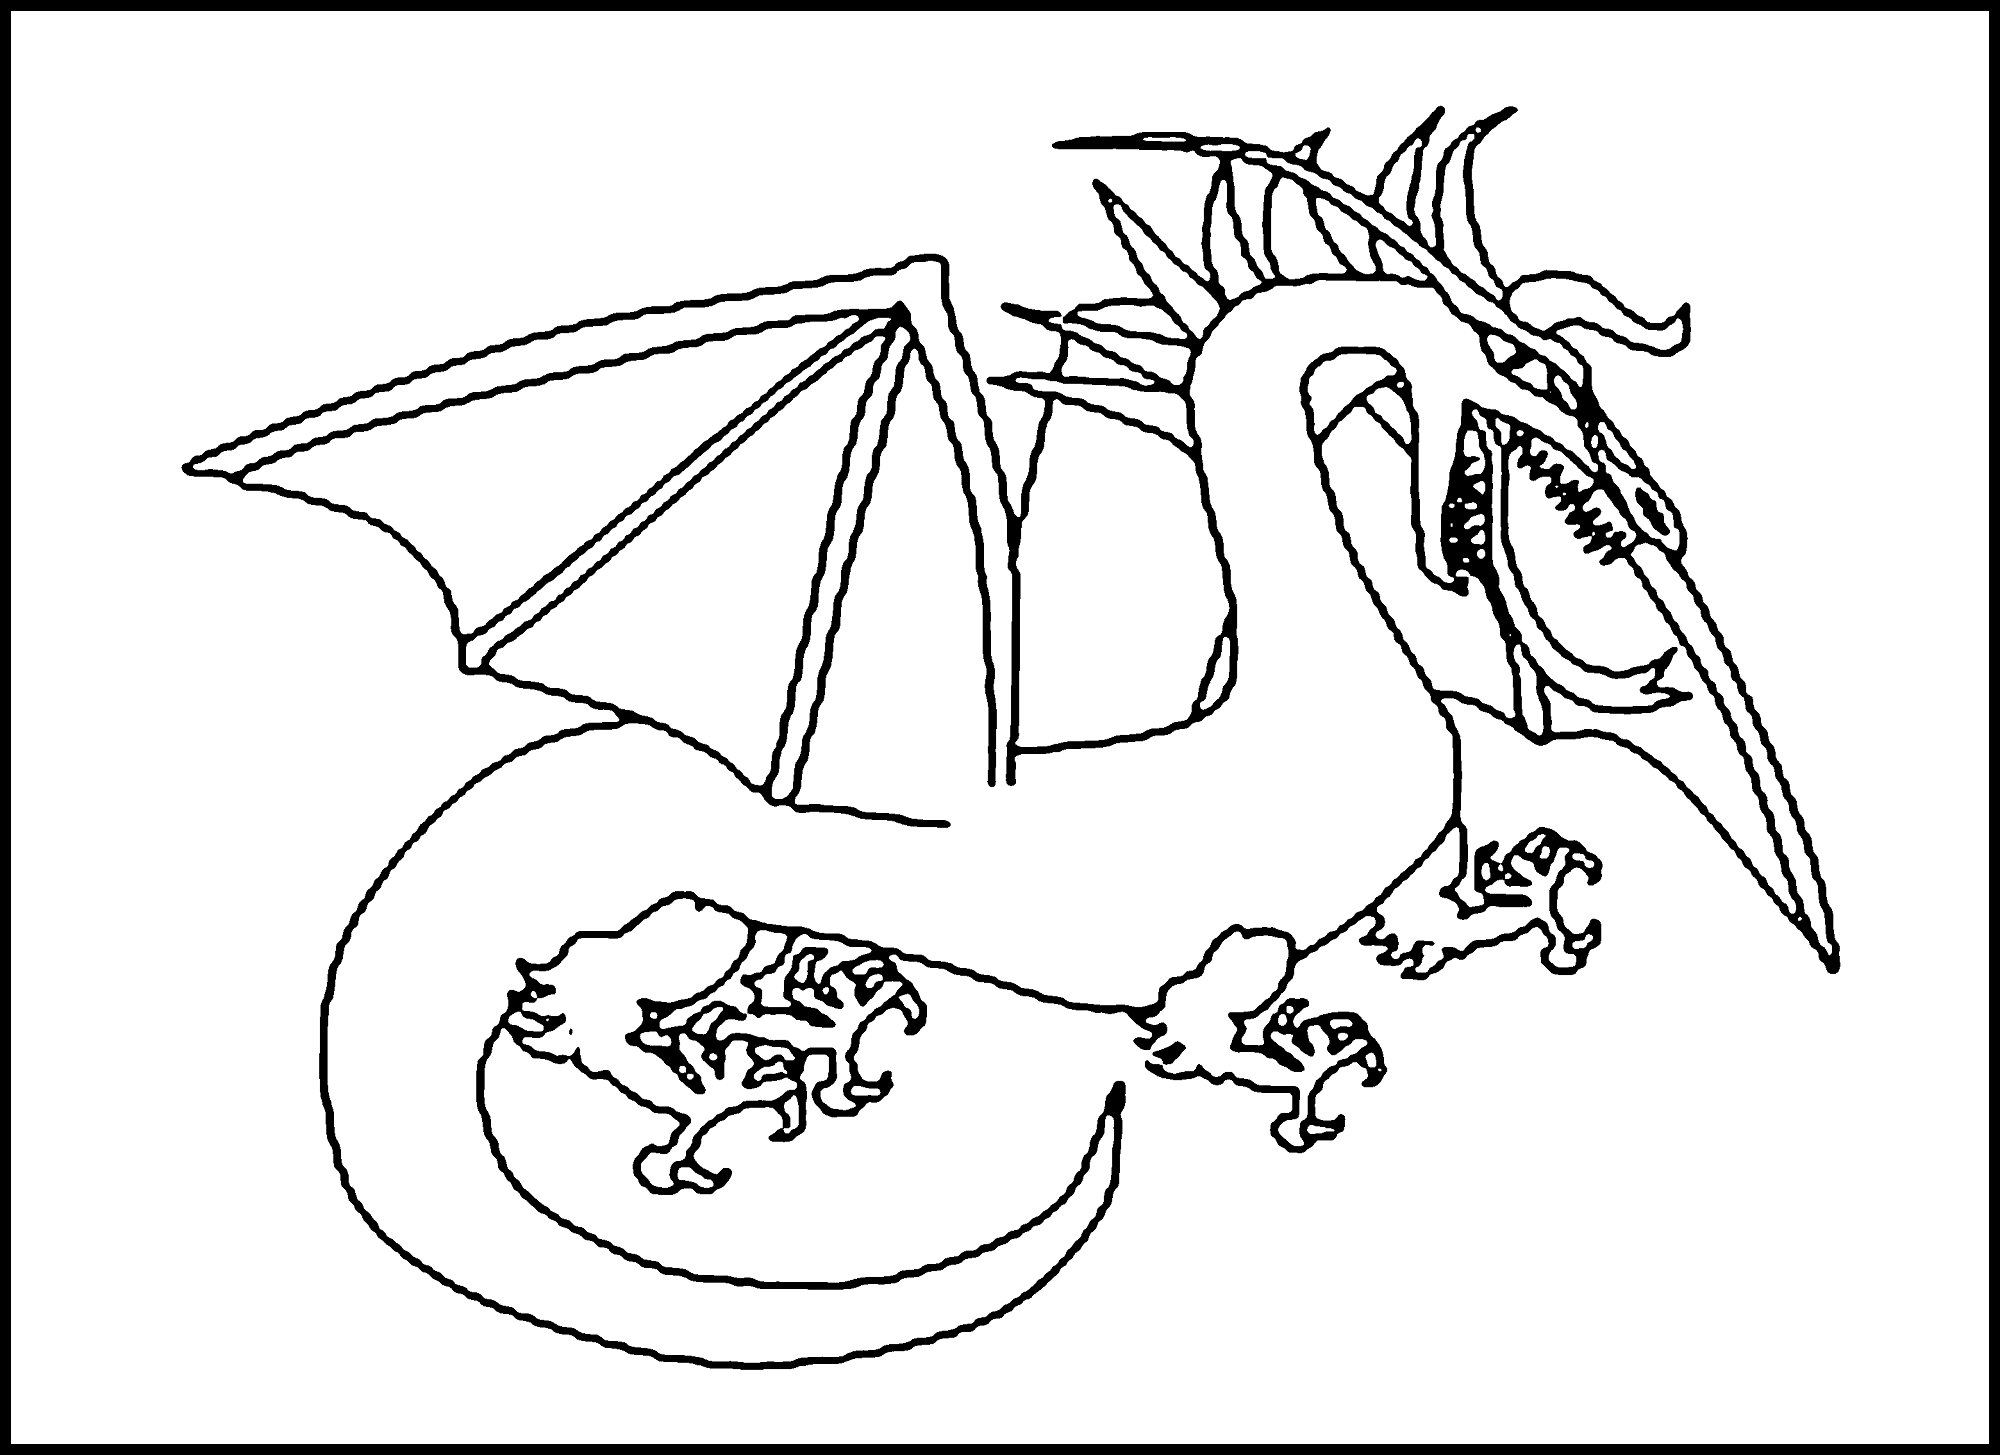 dragon coloring pages free giant dragon dragons adult coloring pages dragon coloring pages free